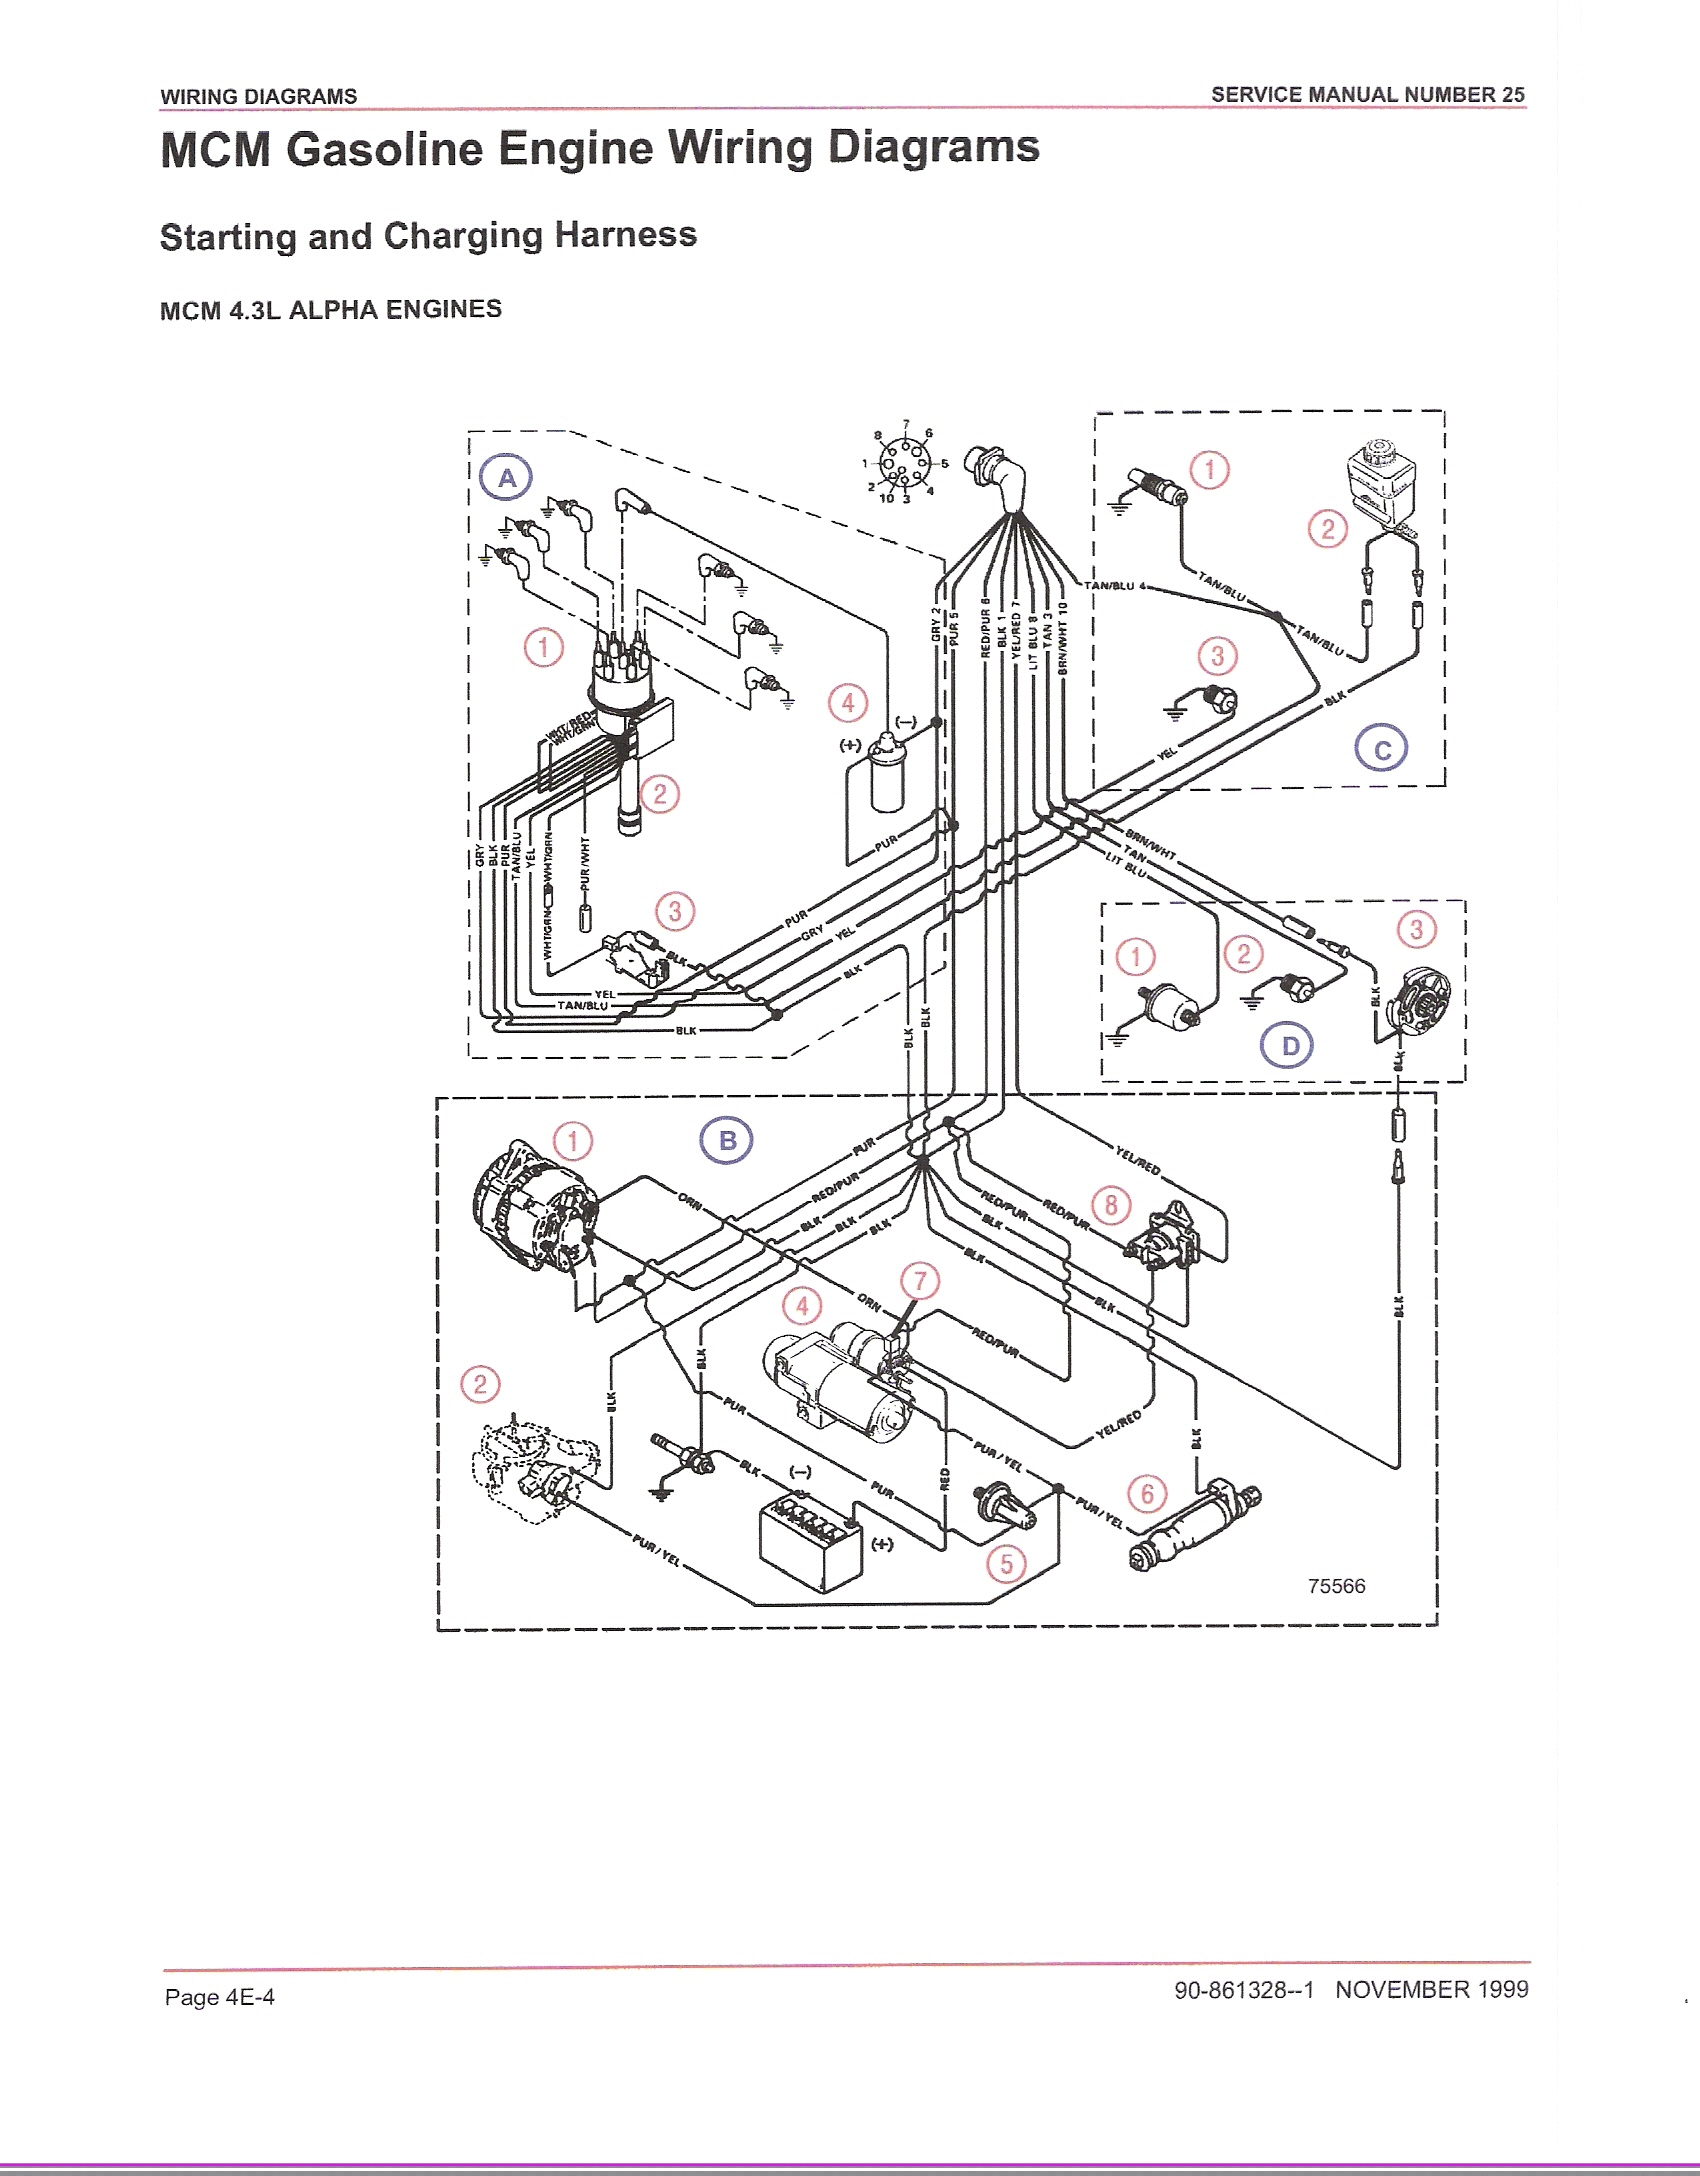 Mercruiser 7 4 Wiring Harness - Blog Wiring Diagram on delco alternator to regulator wiring, onan wiring, dodge wiring, bass boat wiring, gm wiring, yamaha blaster wiring, marine wiring, custom wiring, john deere wiring, omc wiring, massey ferguson wiring, ranger boat wiring, jaguar wiring,